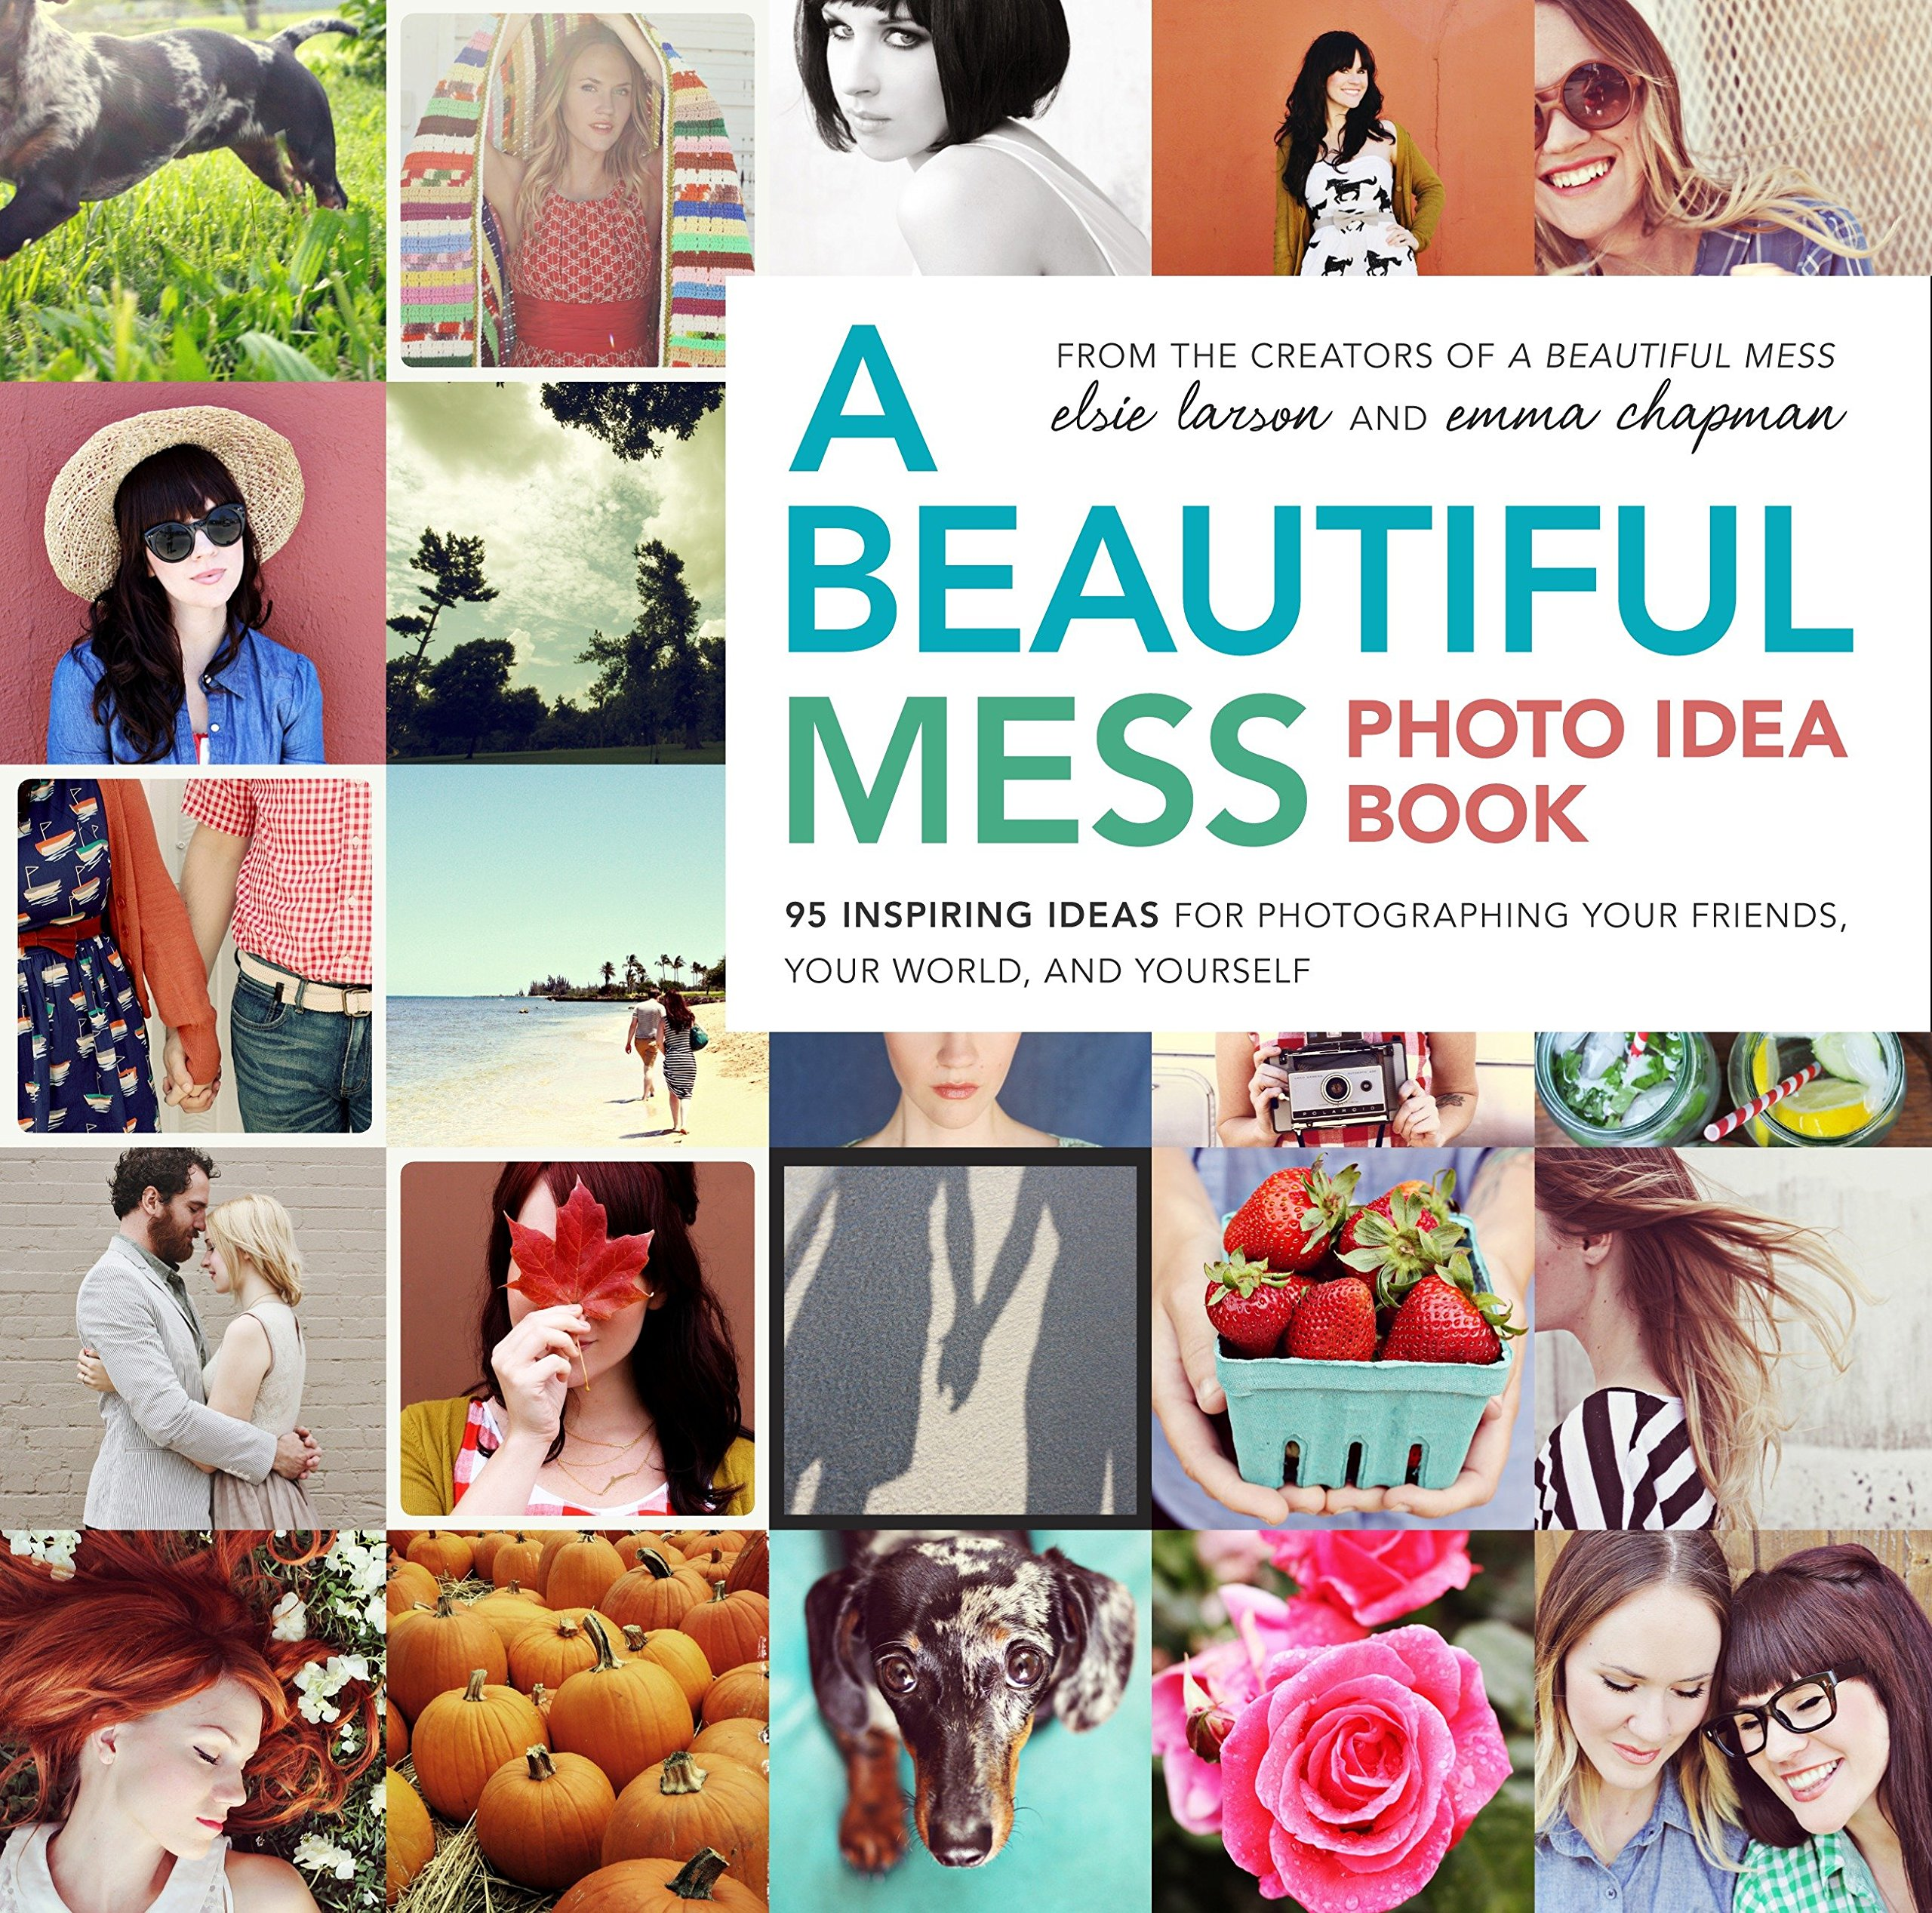 A Beautiful Mess Photo Idea Book 95 Inspiring Ideas For